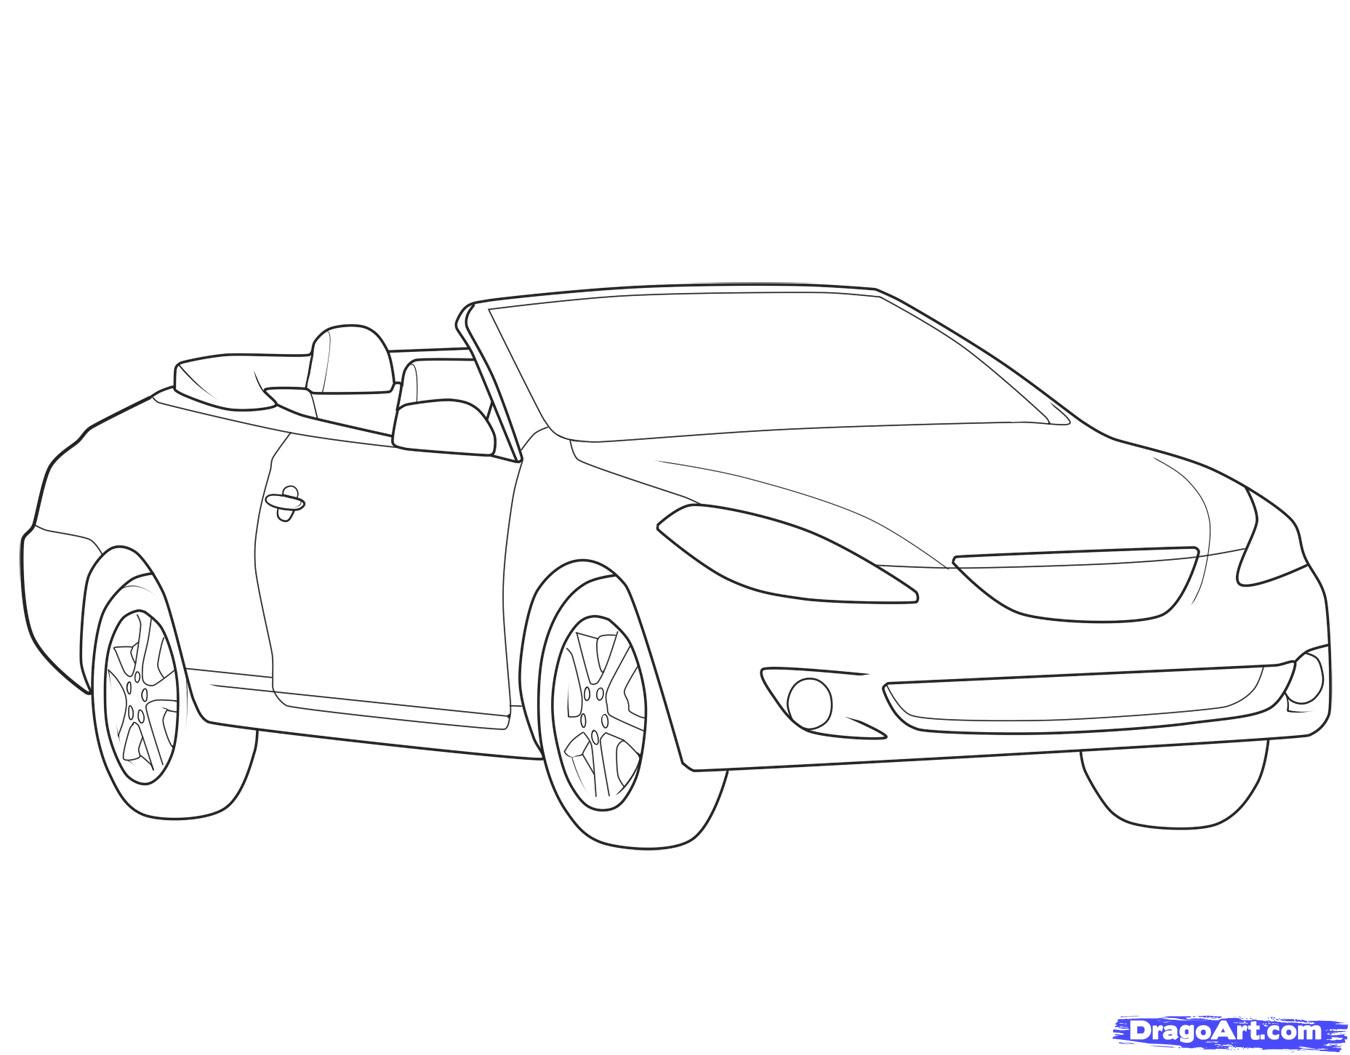 1350x1055 How To Draw A Convertible, Step By Step, Cars, Draw Cars Online